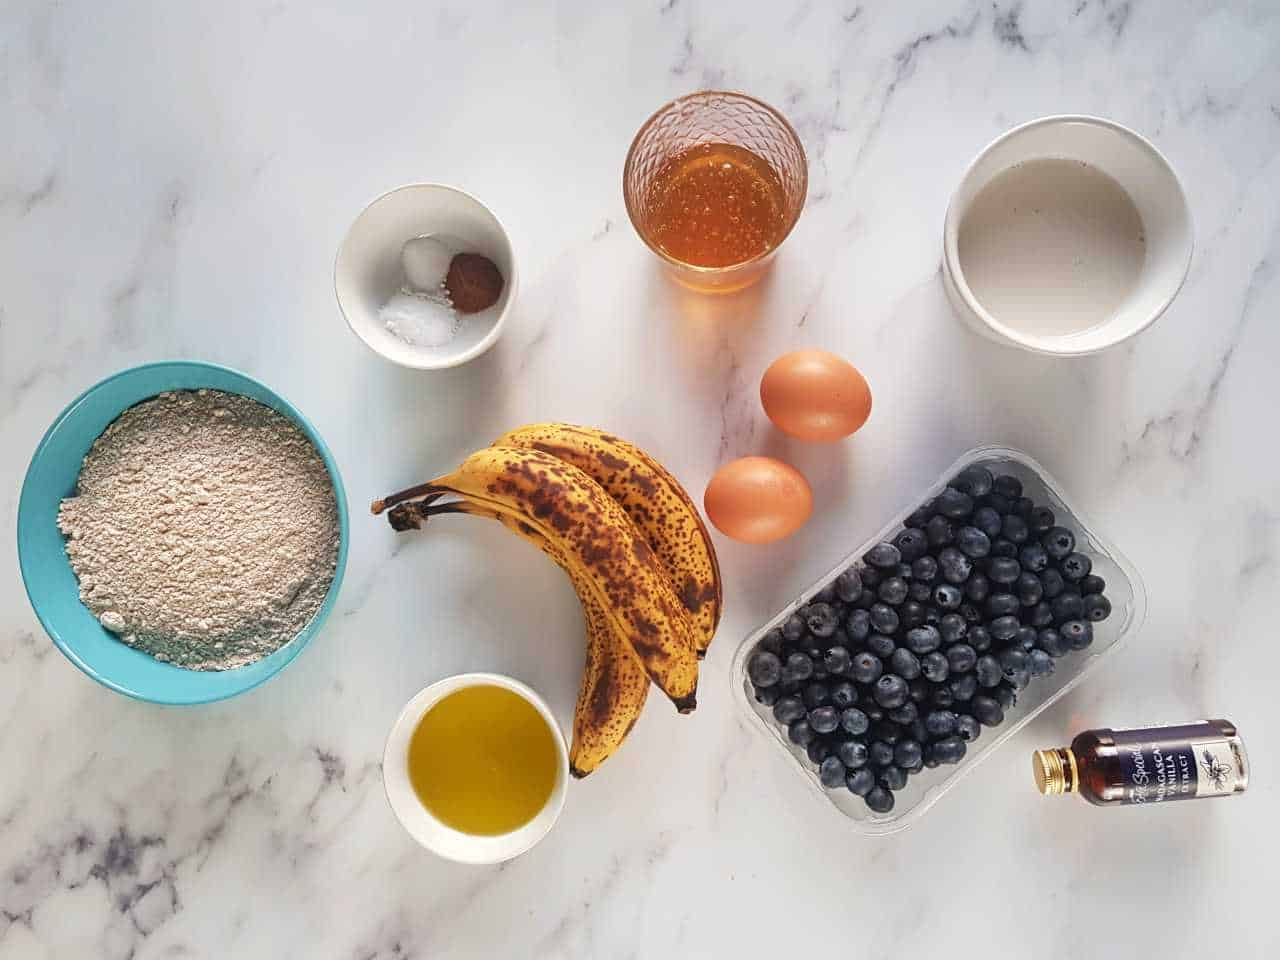 Banana bread ingredients on a marble table.